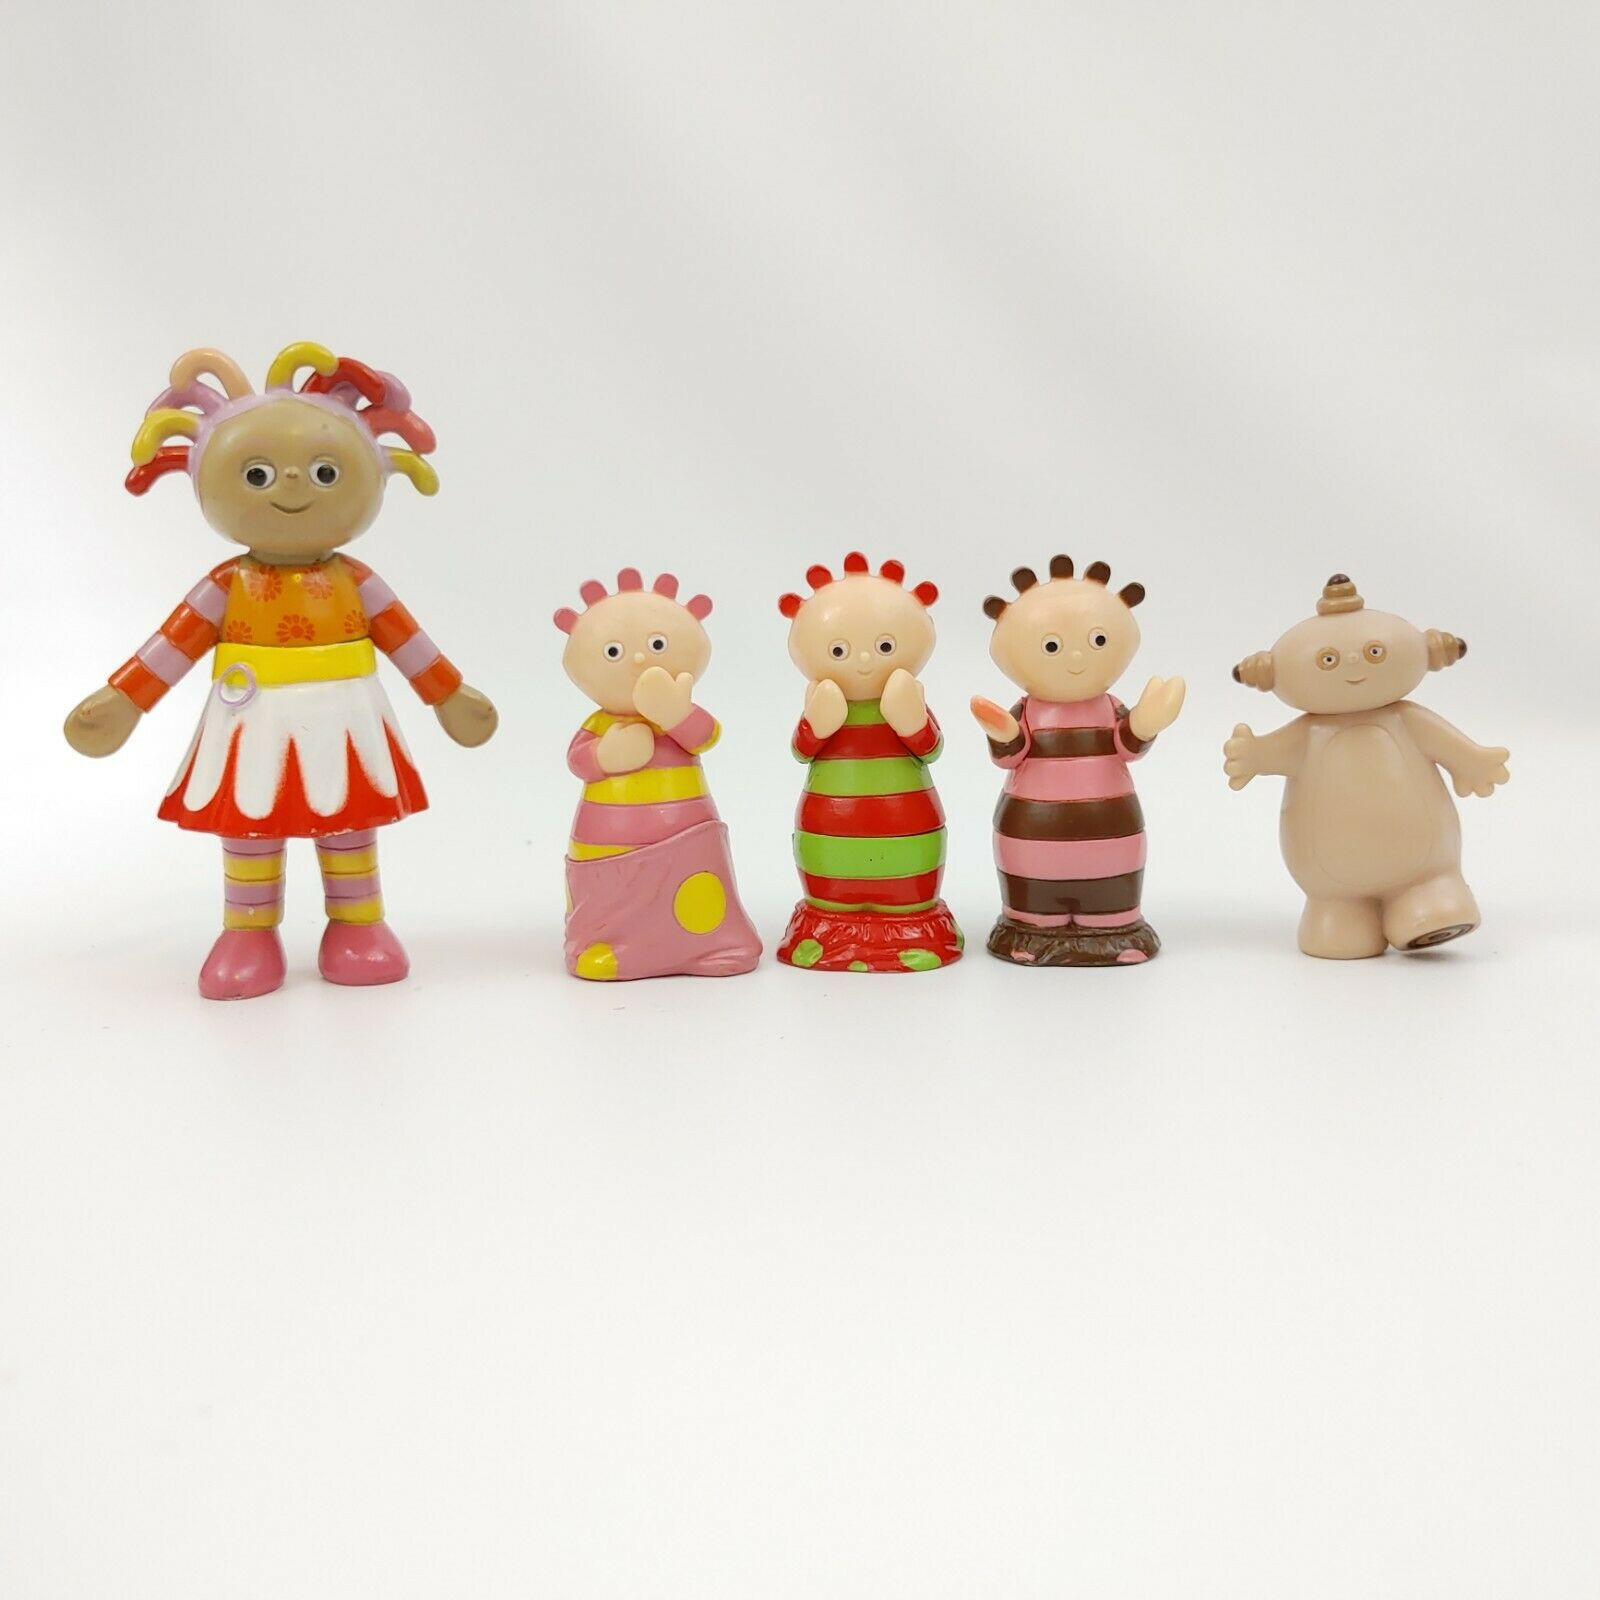 En Bois Pull Along Igglepiggle Upsy Daisy Makka Pakka In The Night Garden